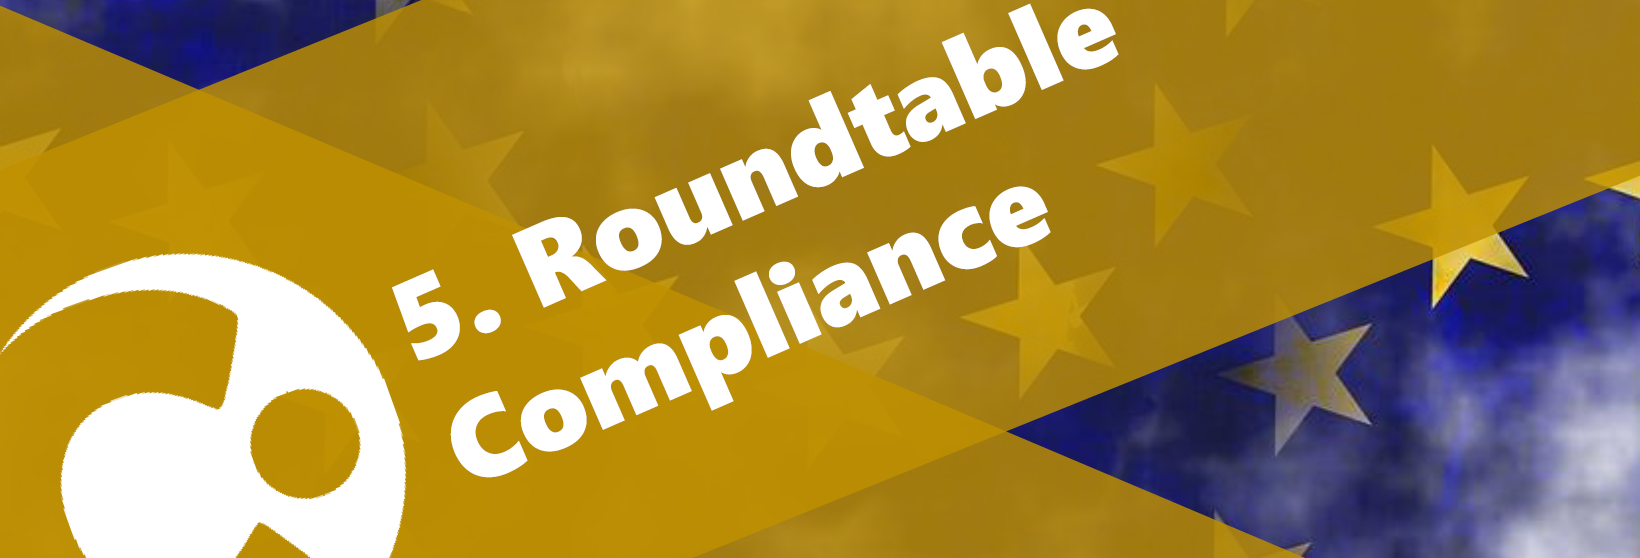 5. Roundtable Compliance